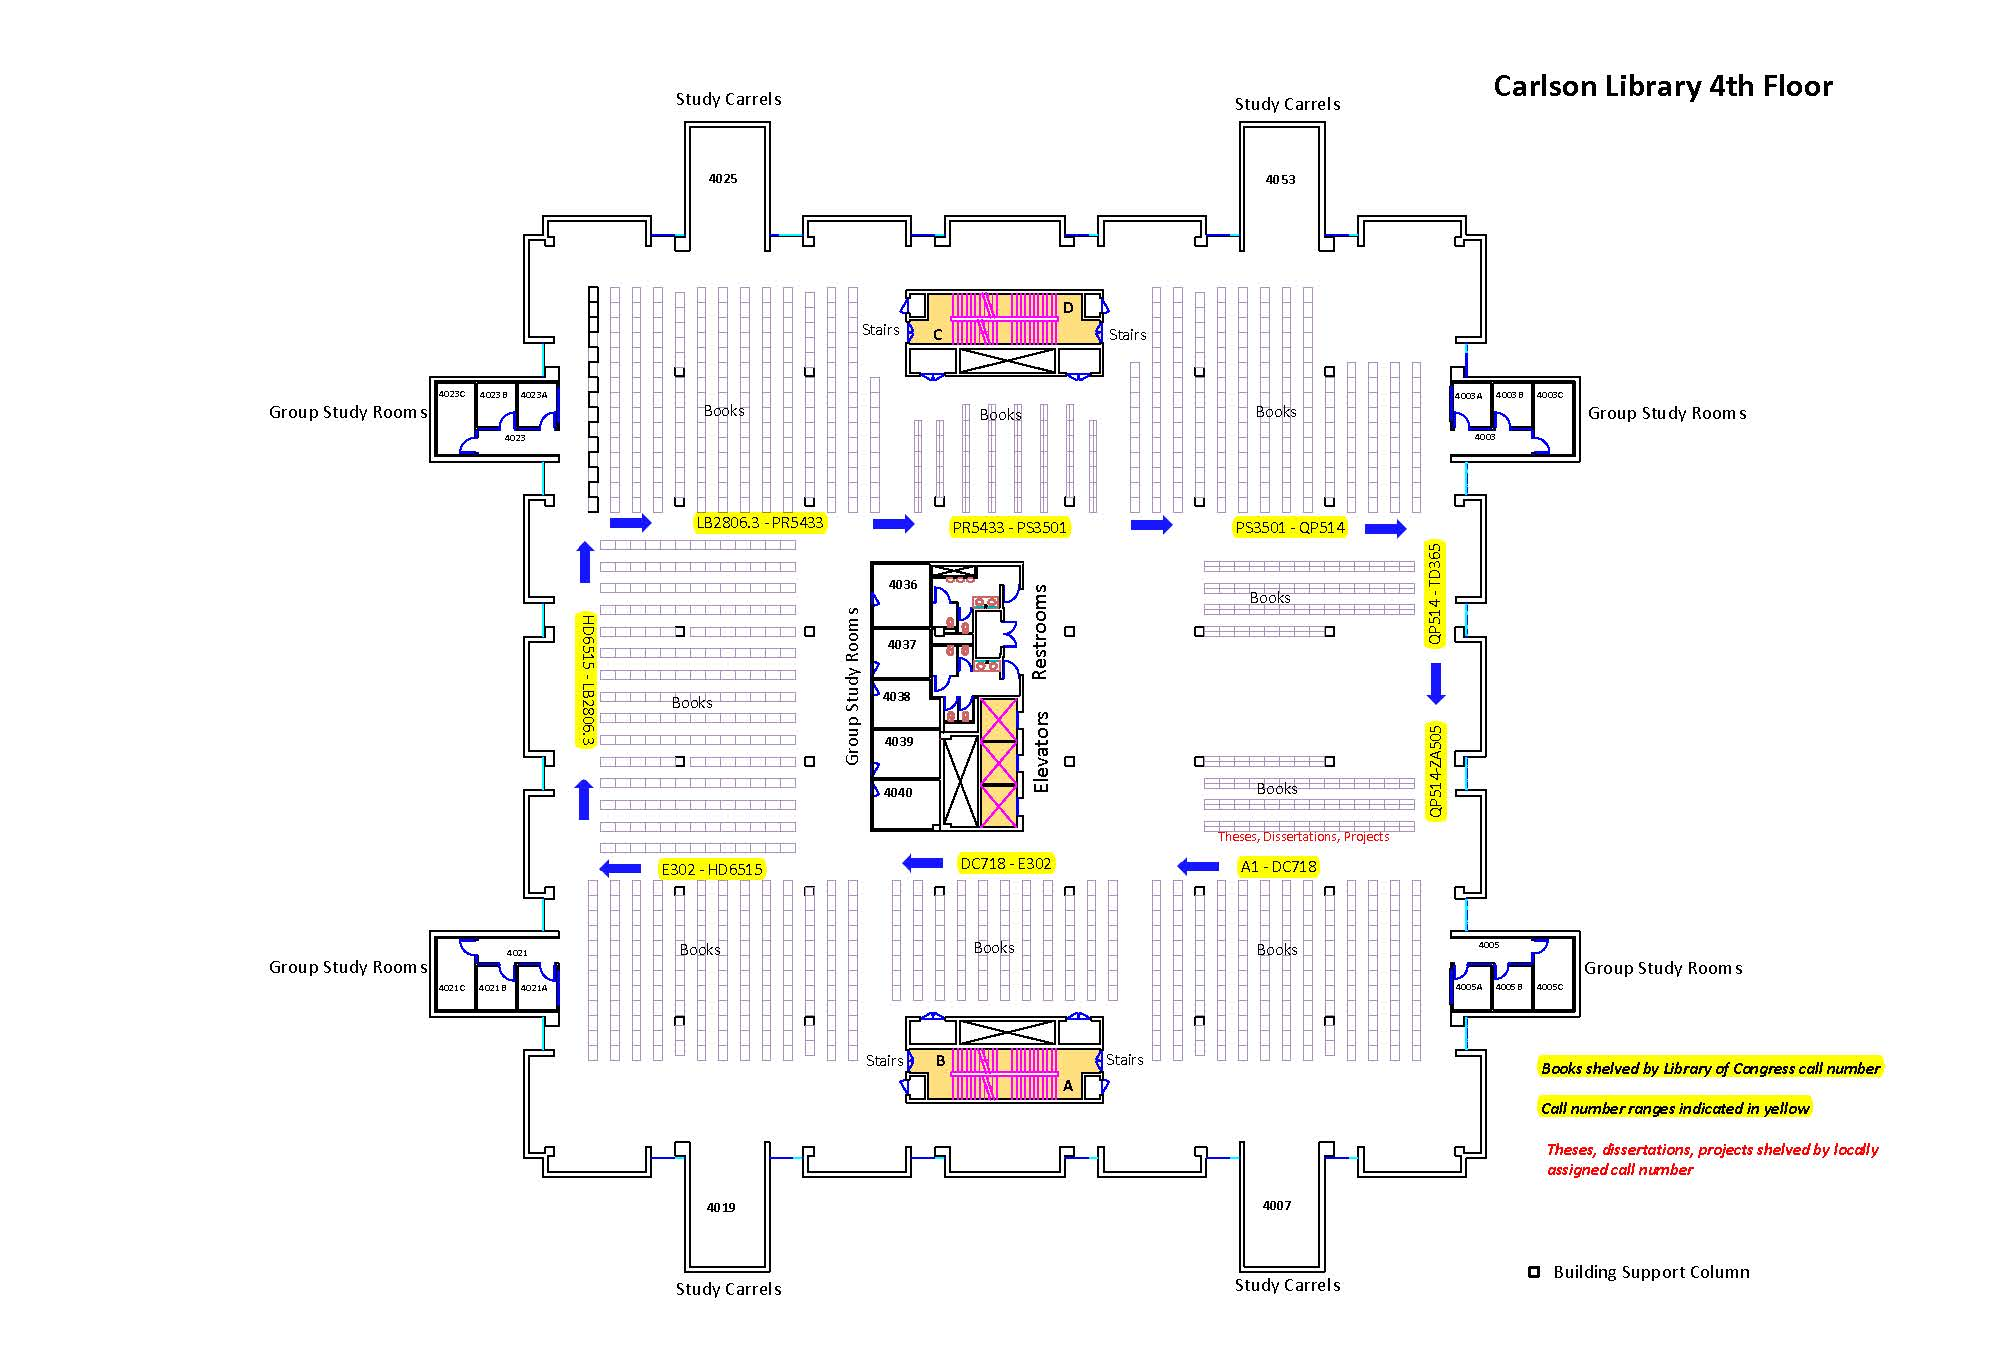 Carlson Library Fourth Floor Map